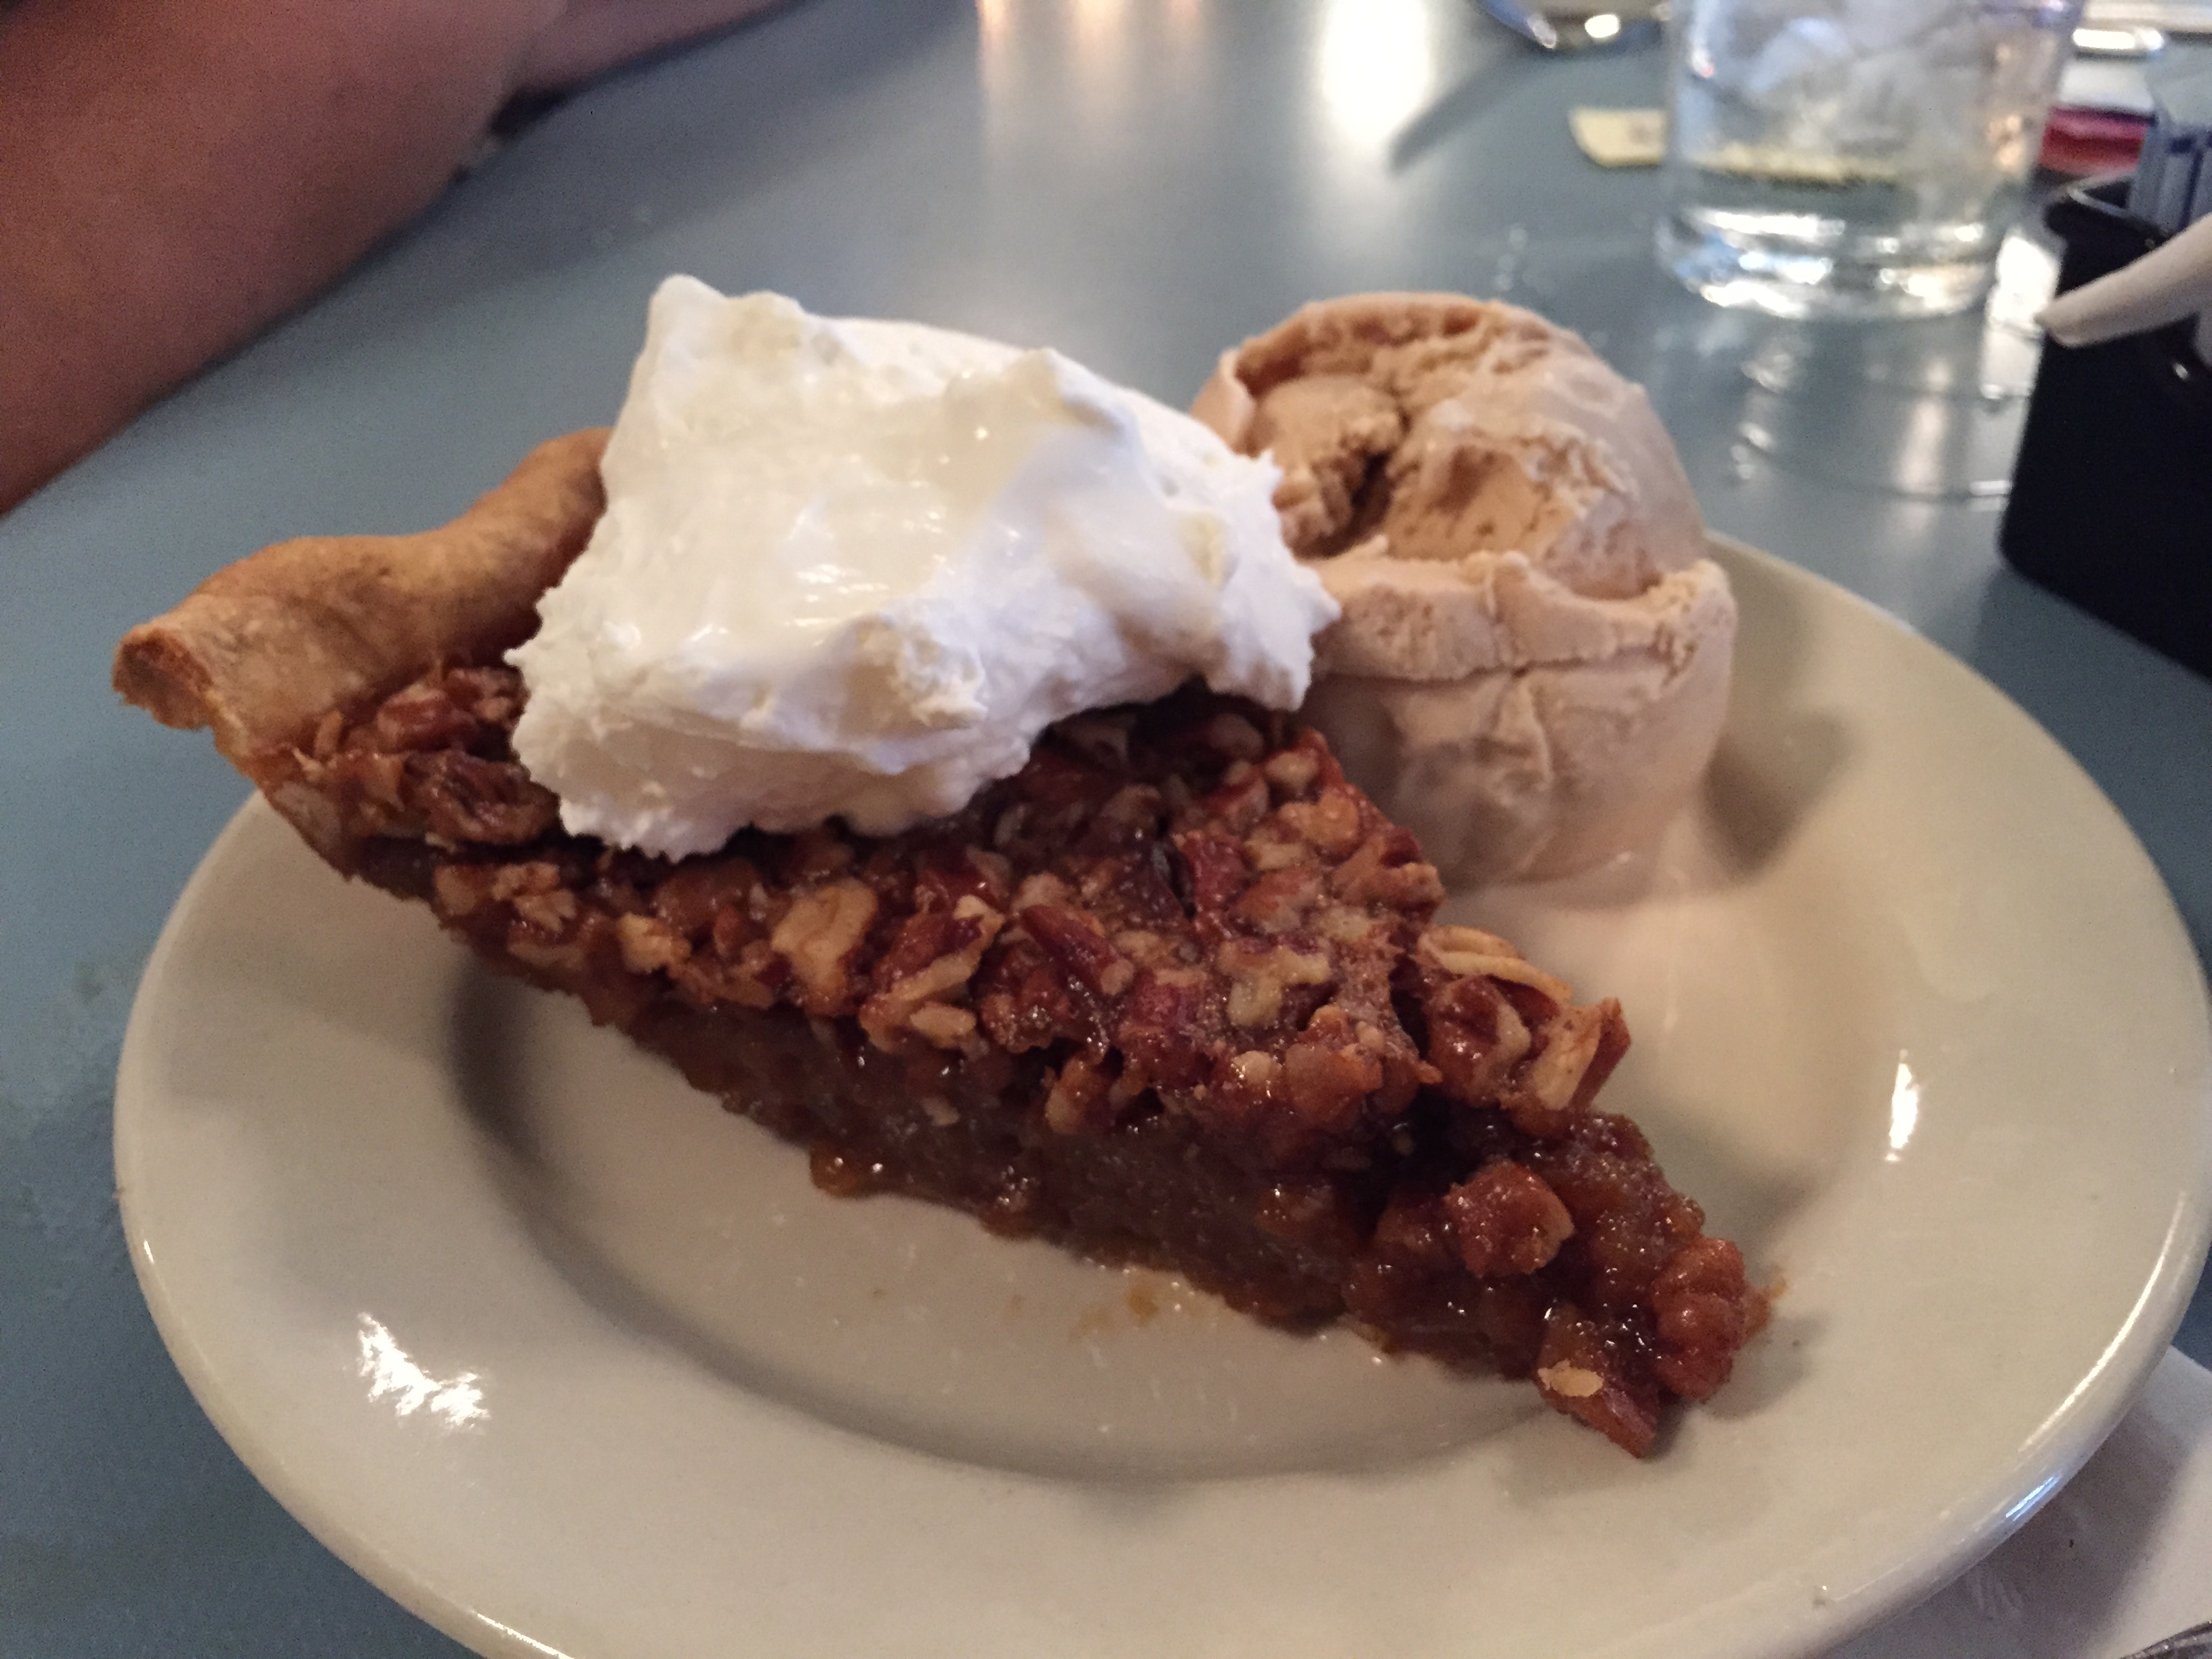 Pie with Jack Daniels ice cream at High Hat Cafe. (Photo: Emily Smith)